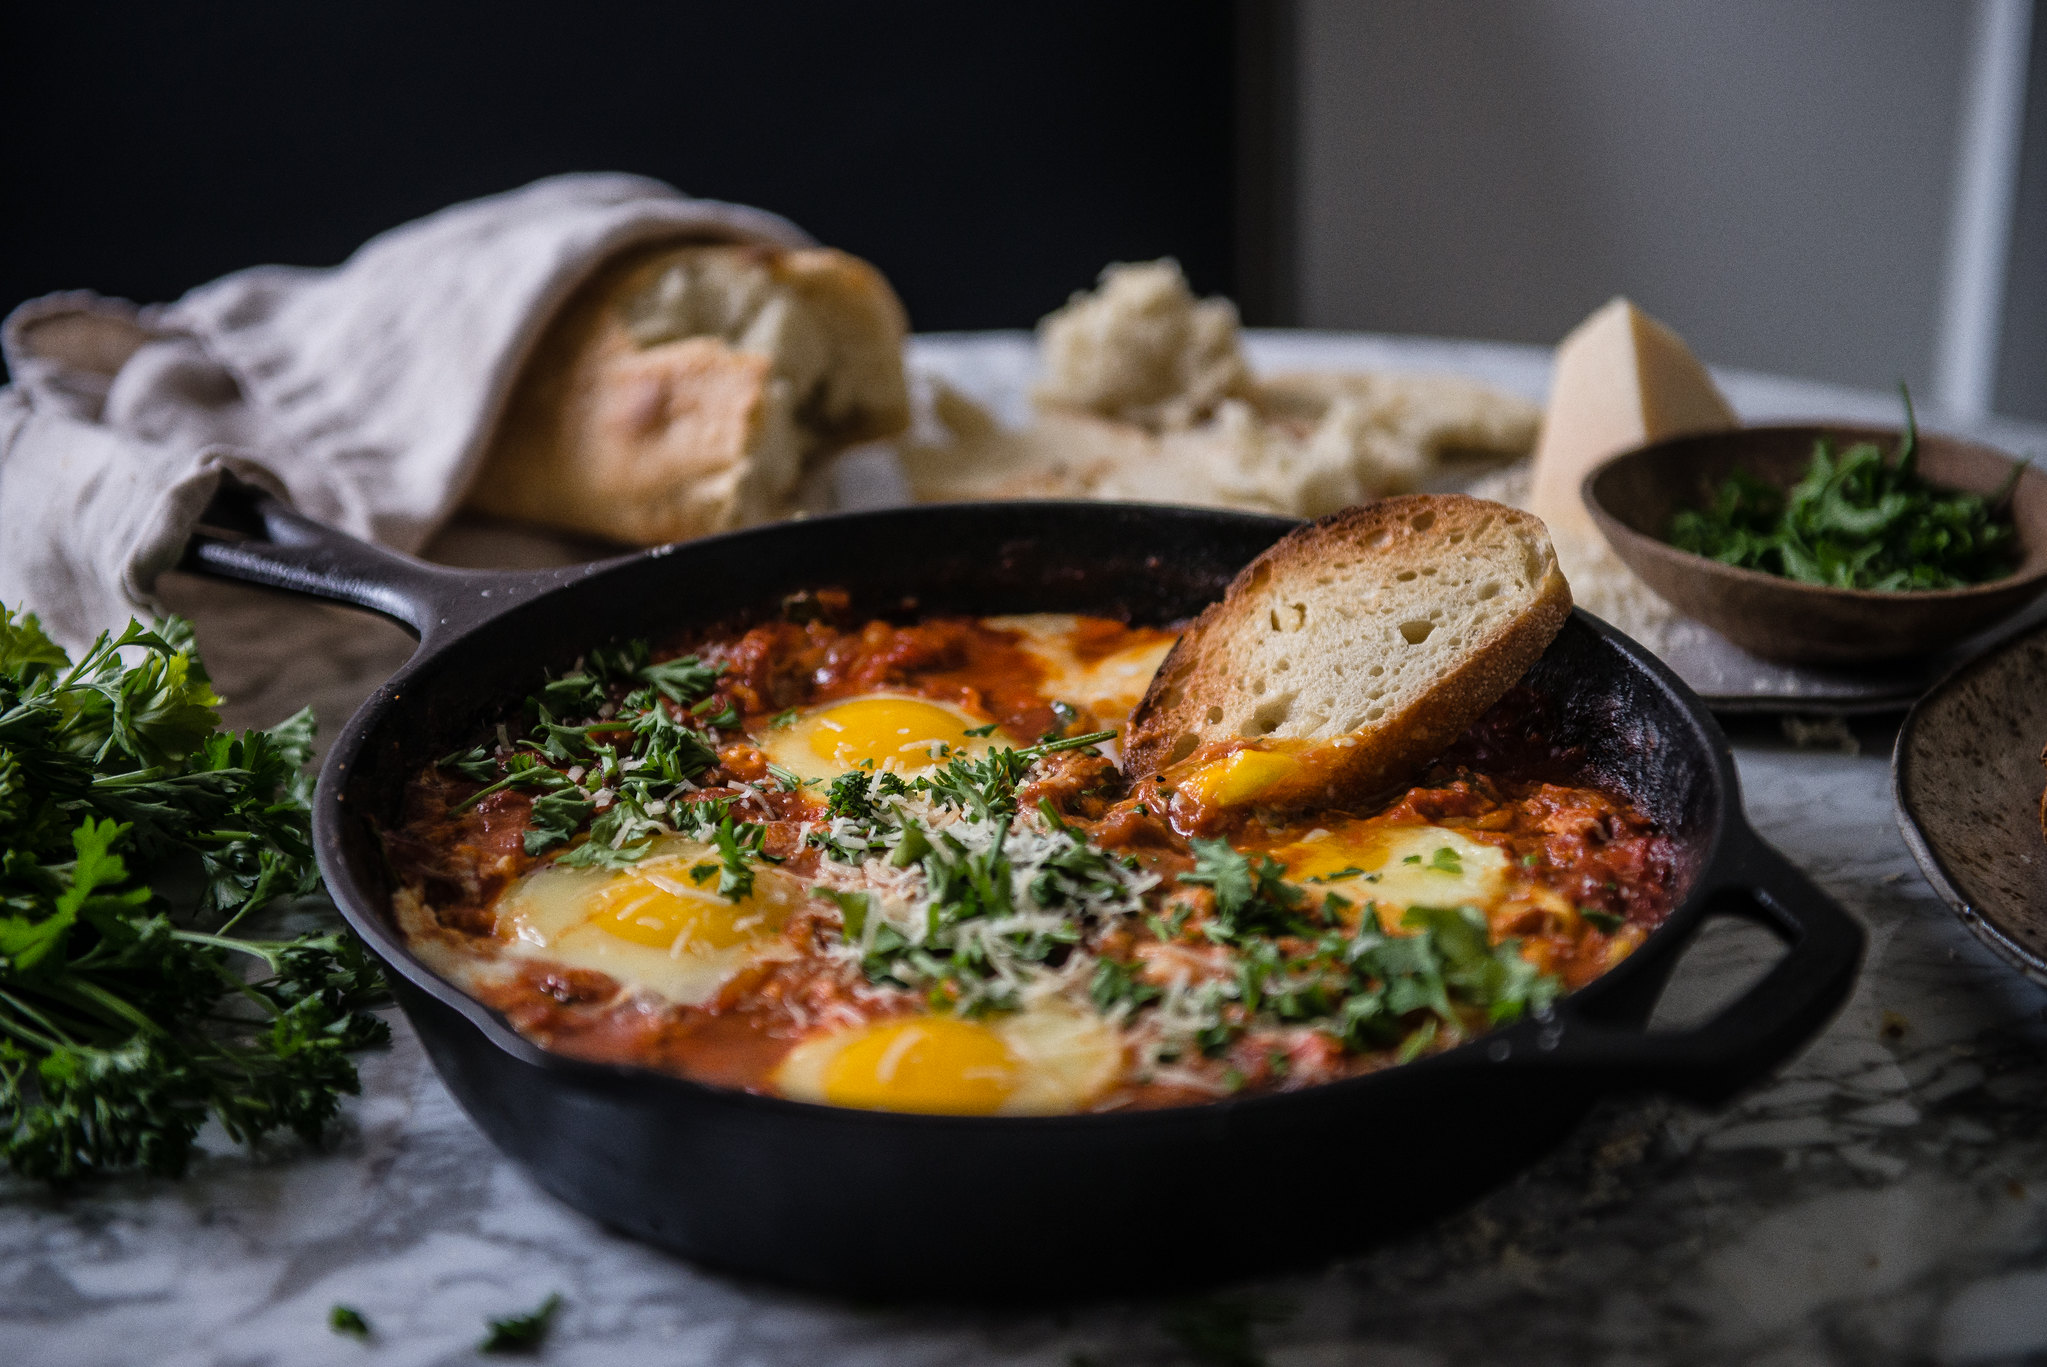 gochujang eggs in purgatory, from a common table